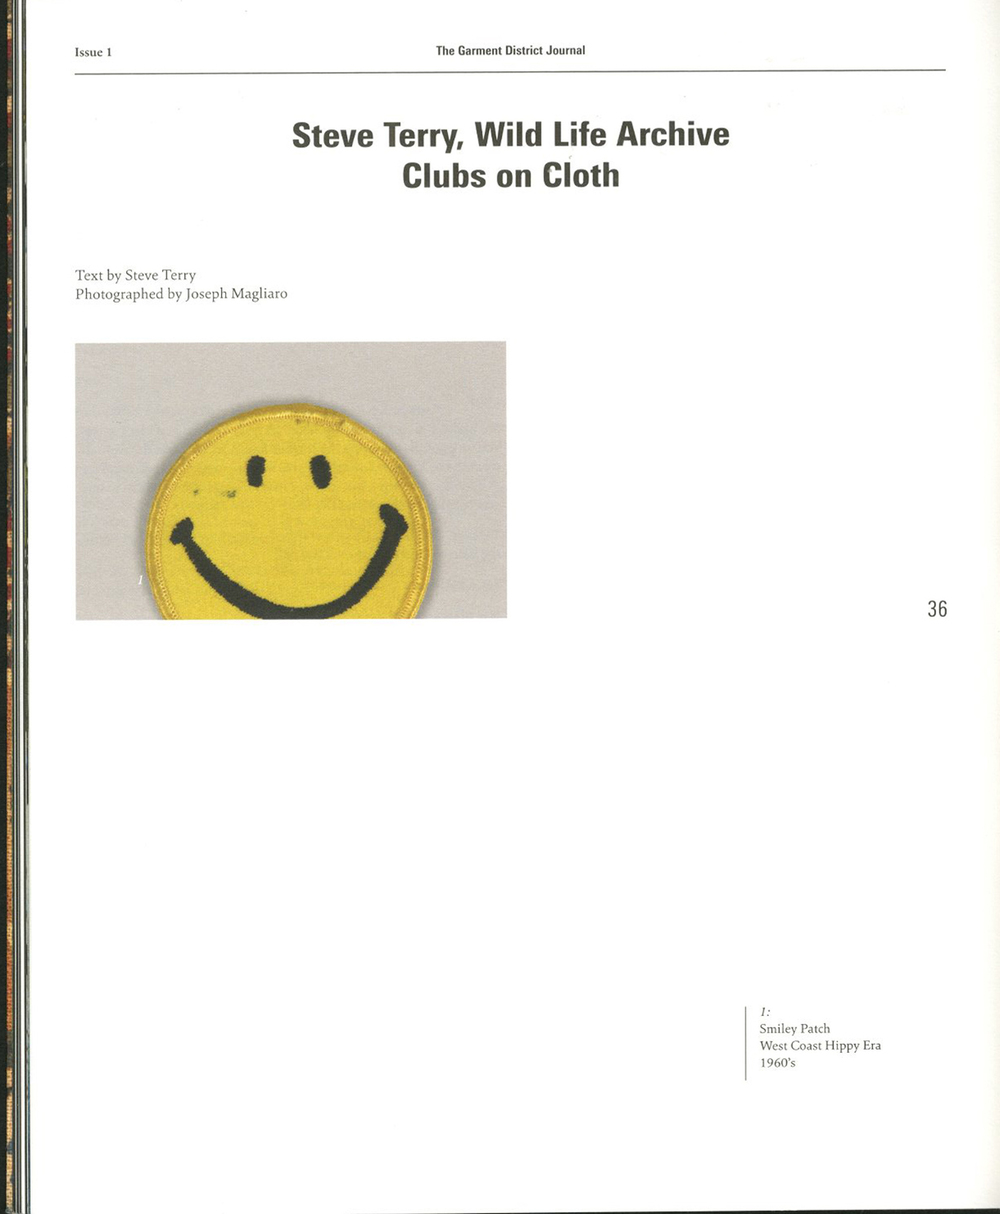 1 steve terry, wild life arcive clubs on cloth.jpg